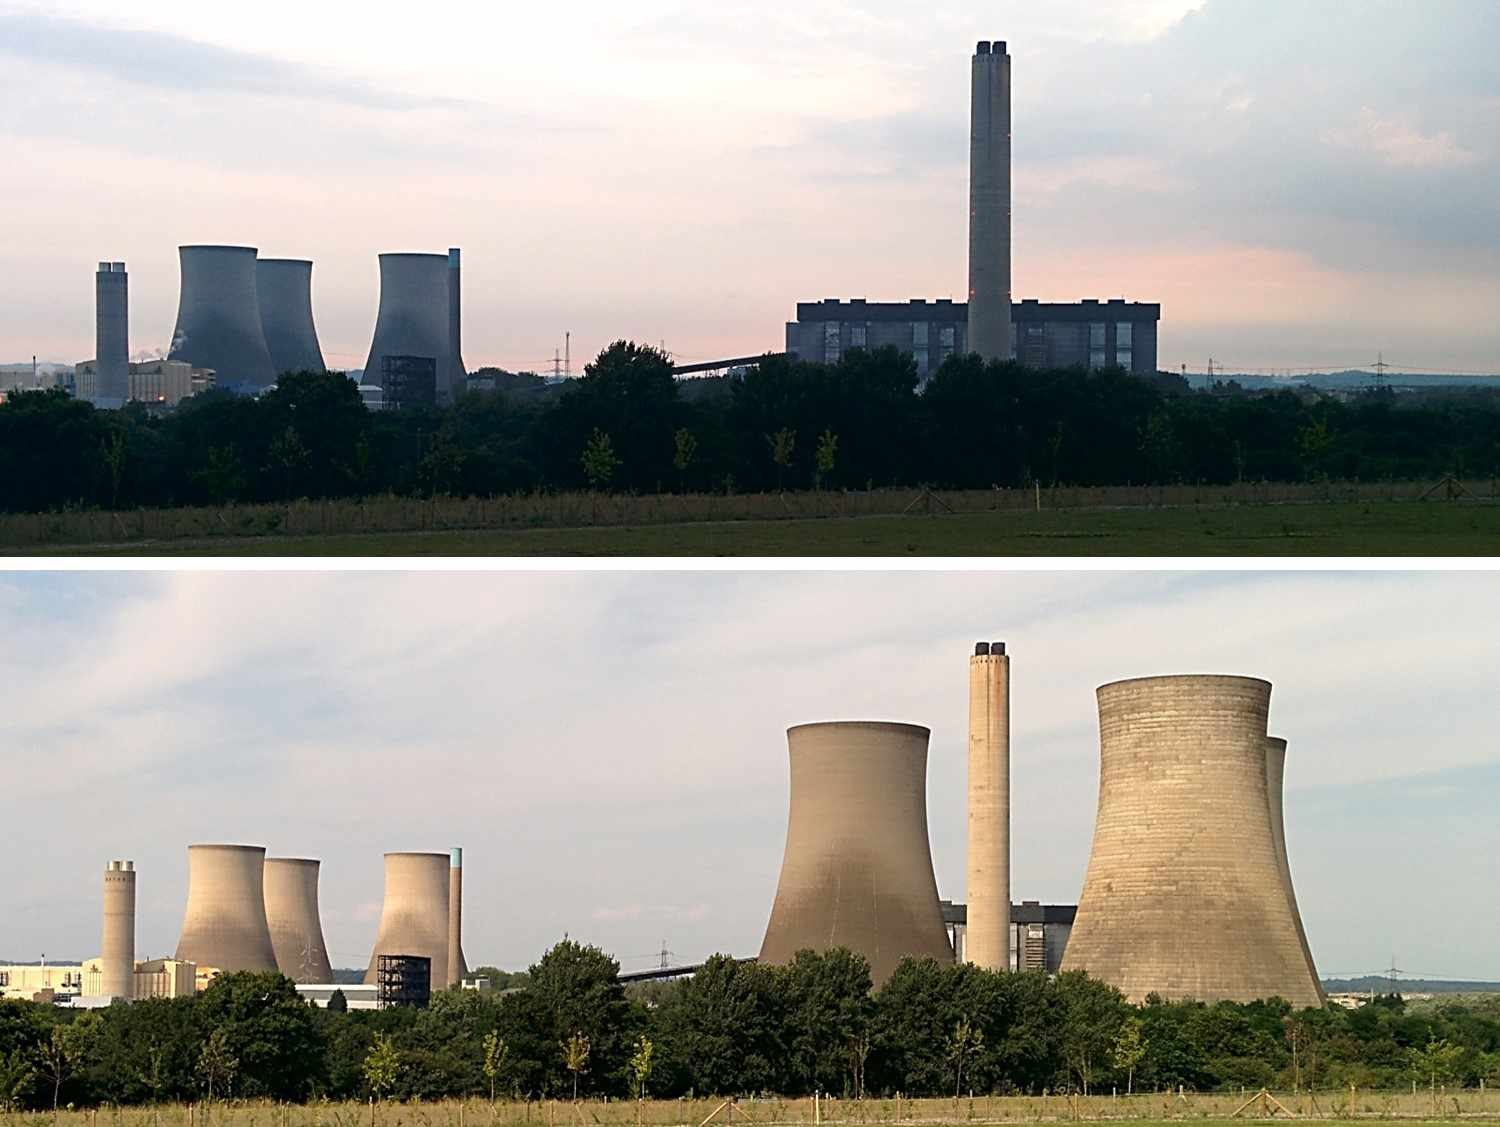 Cooling Tower Demolition : Iconic didcot cooling towers demolished jackfm